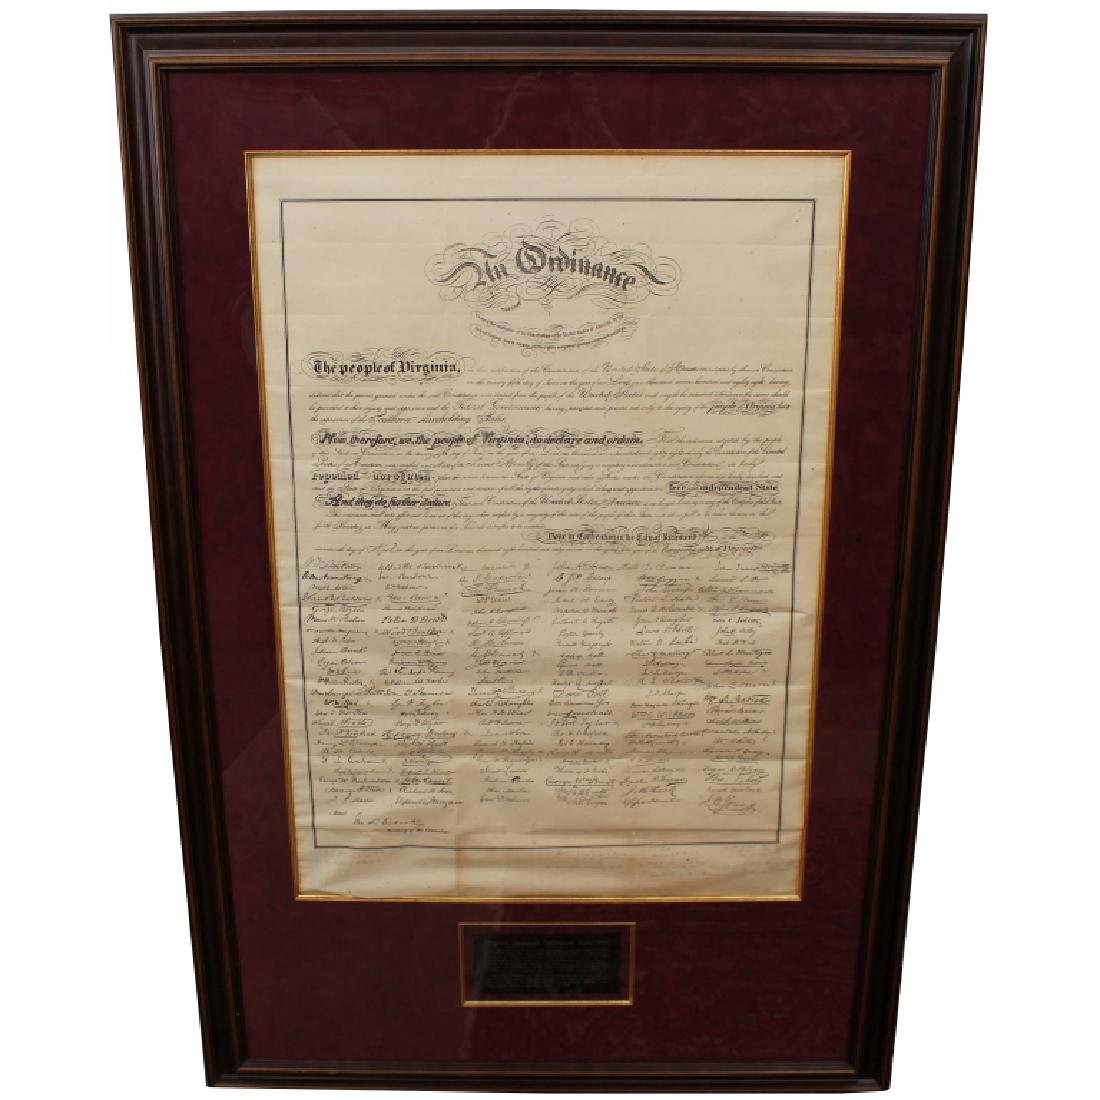 Rare Ordinance of Secession 1861 Document